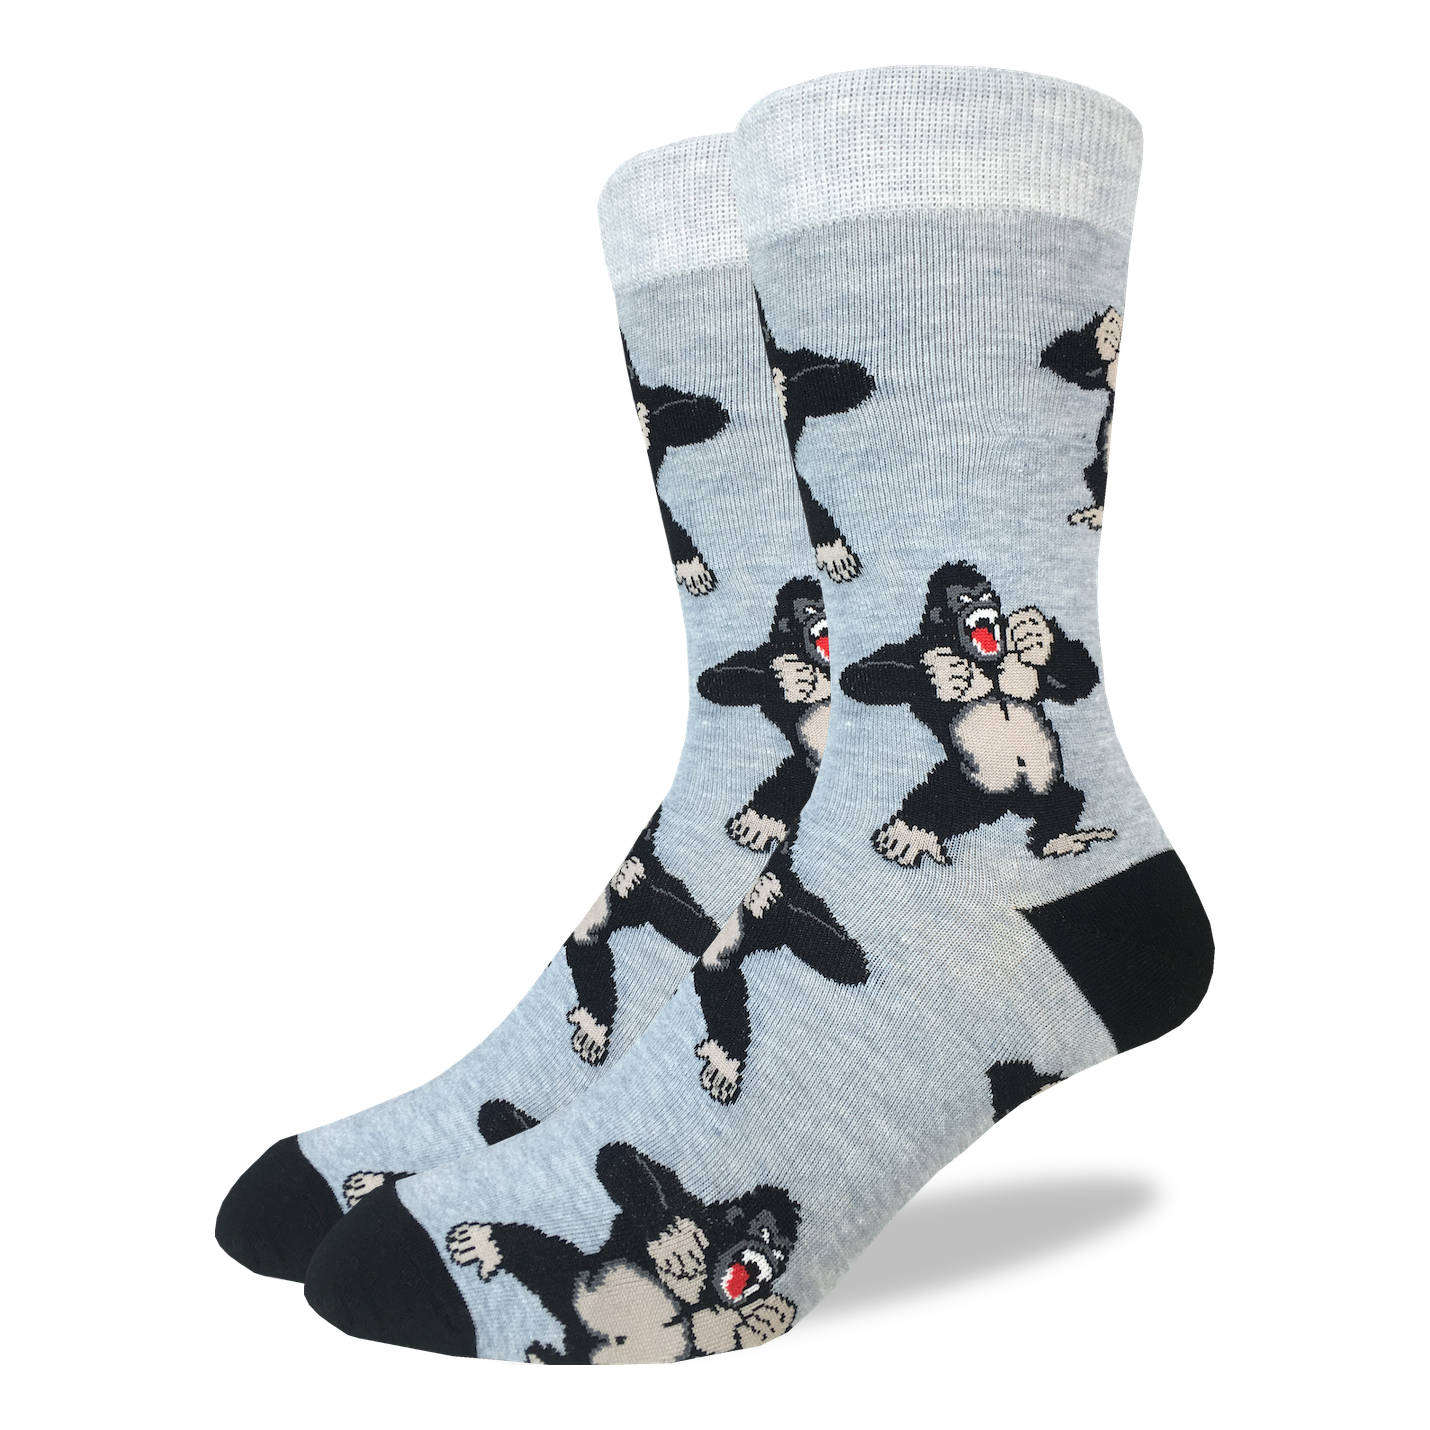 Men's Gorilla Socks - Good Luck Sock